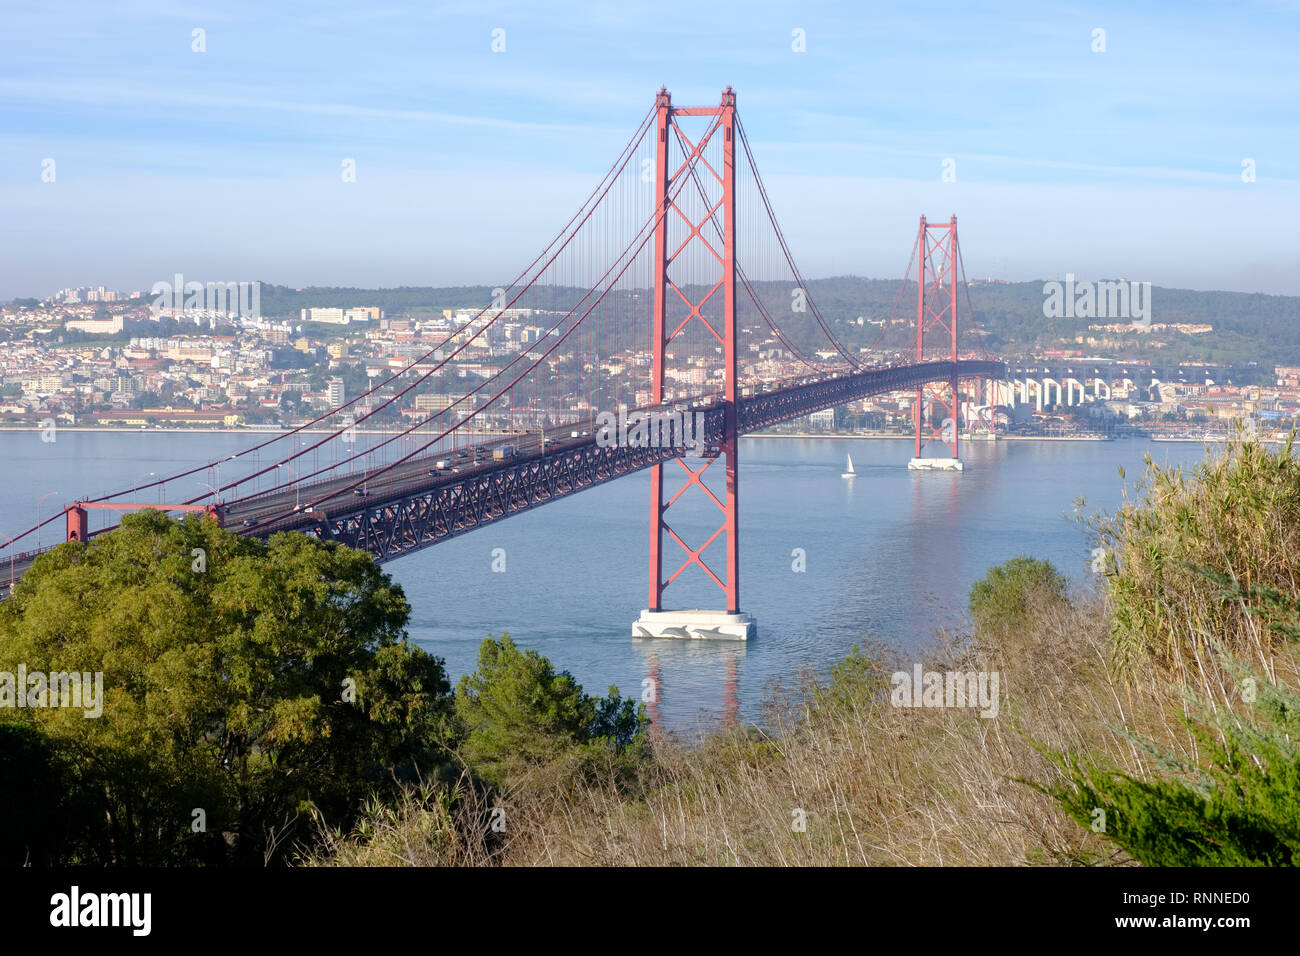 25 de Abril bridge (April 25 bridge) connects the city of Lisbon to Almada on the south bank crossing the river Tagus Stock Photo